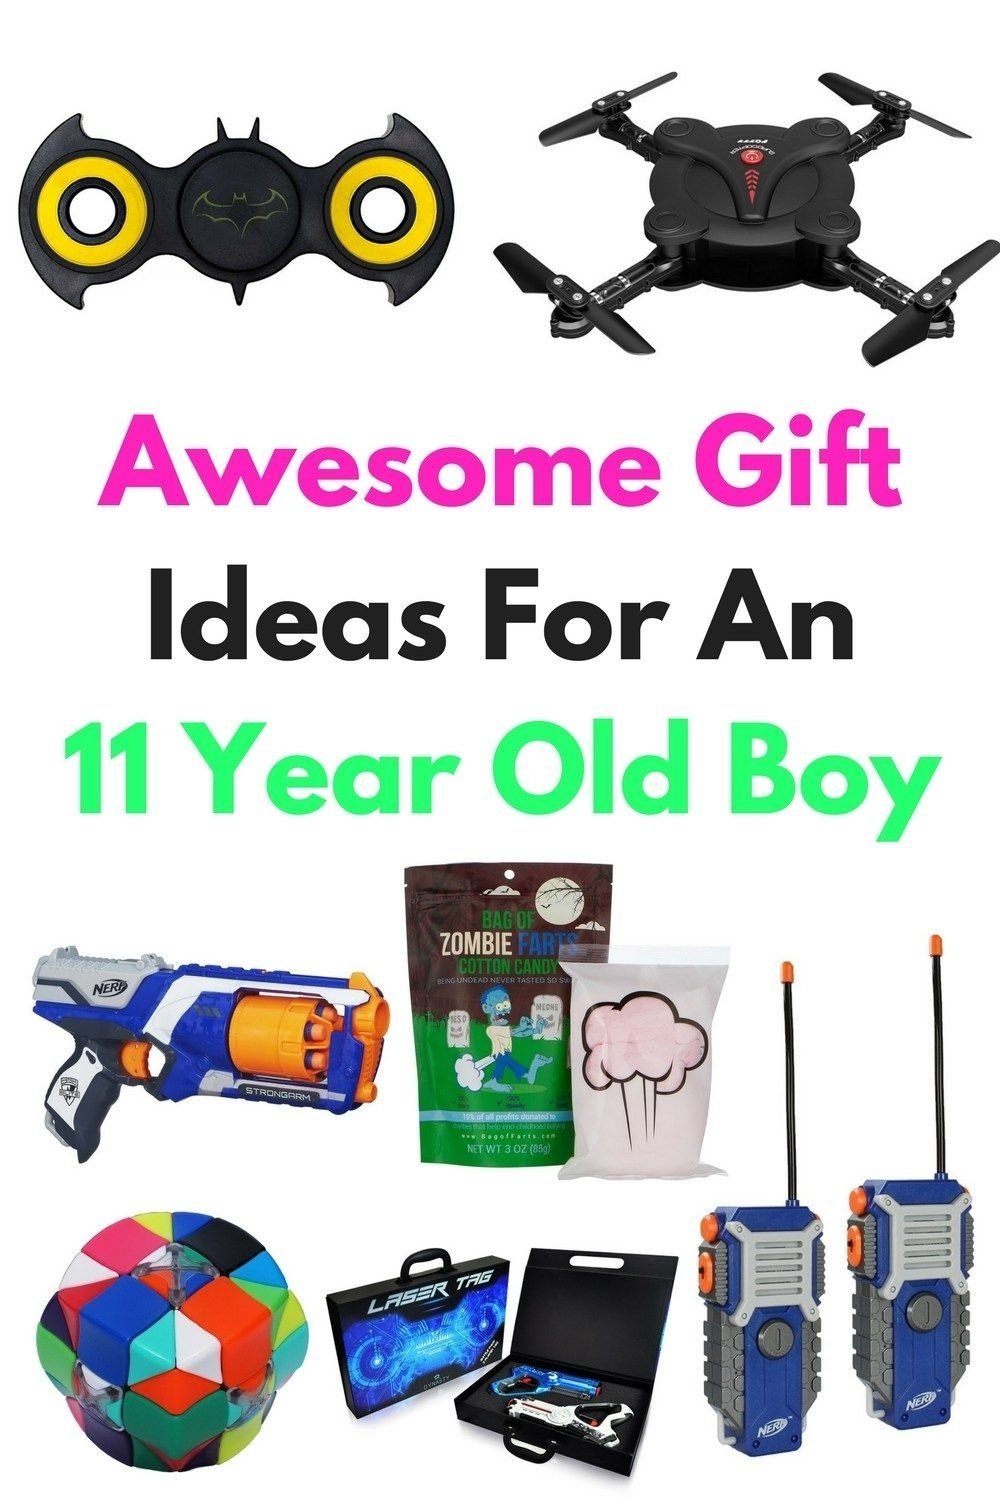 10 Lovable Gift Ideas For 11 Year Old Boy awesome gift ideas for an 11 year old boy awesome gifts easter 9